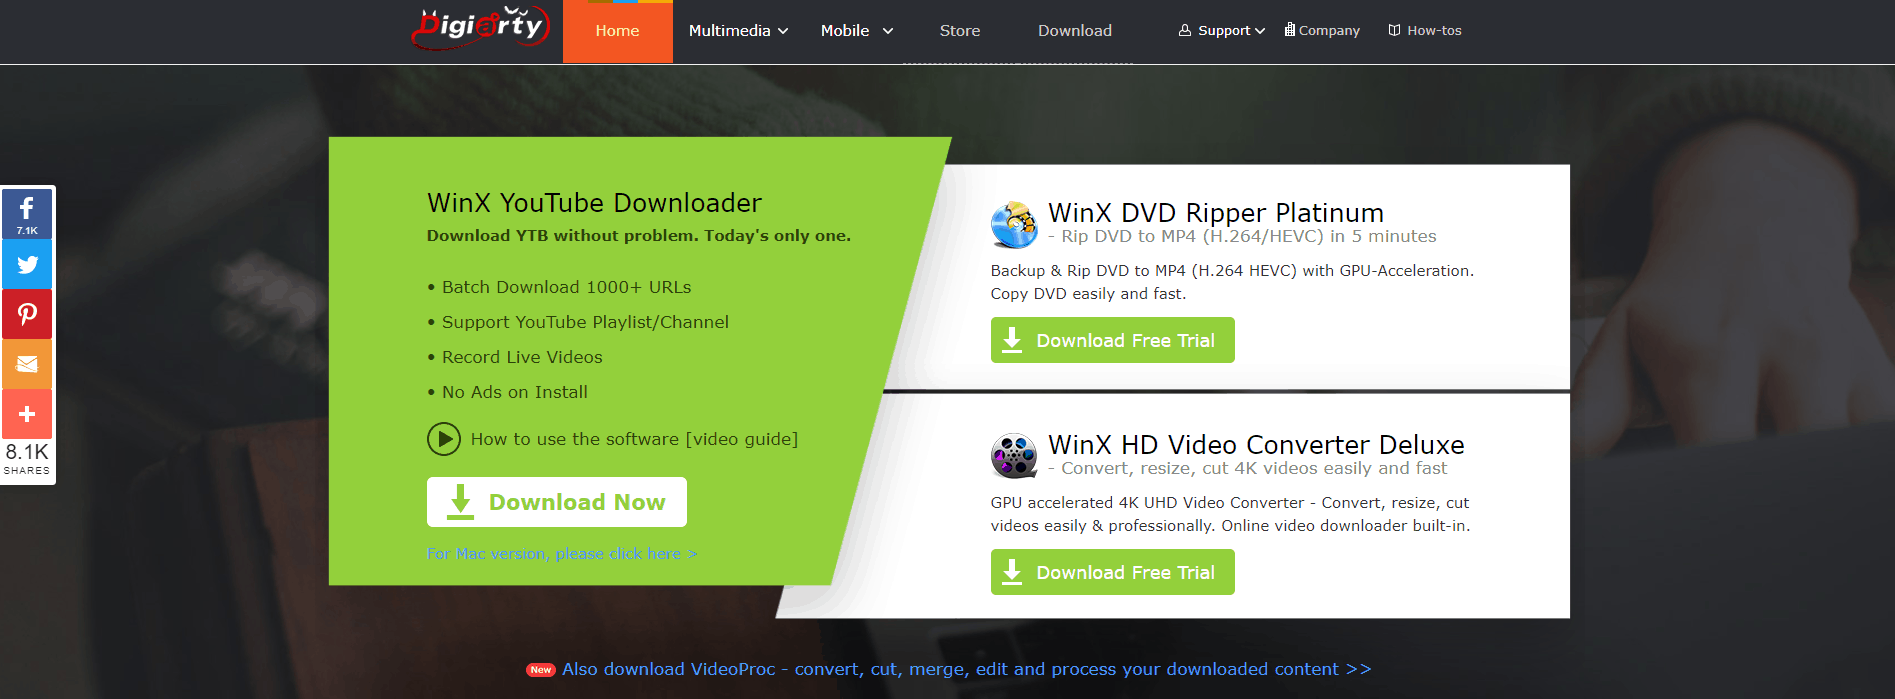 WinX YouTube Downloader Homepage Screenshot